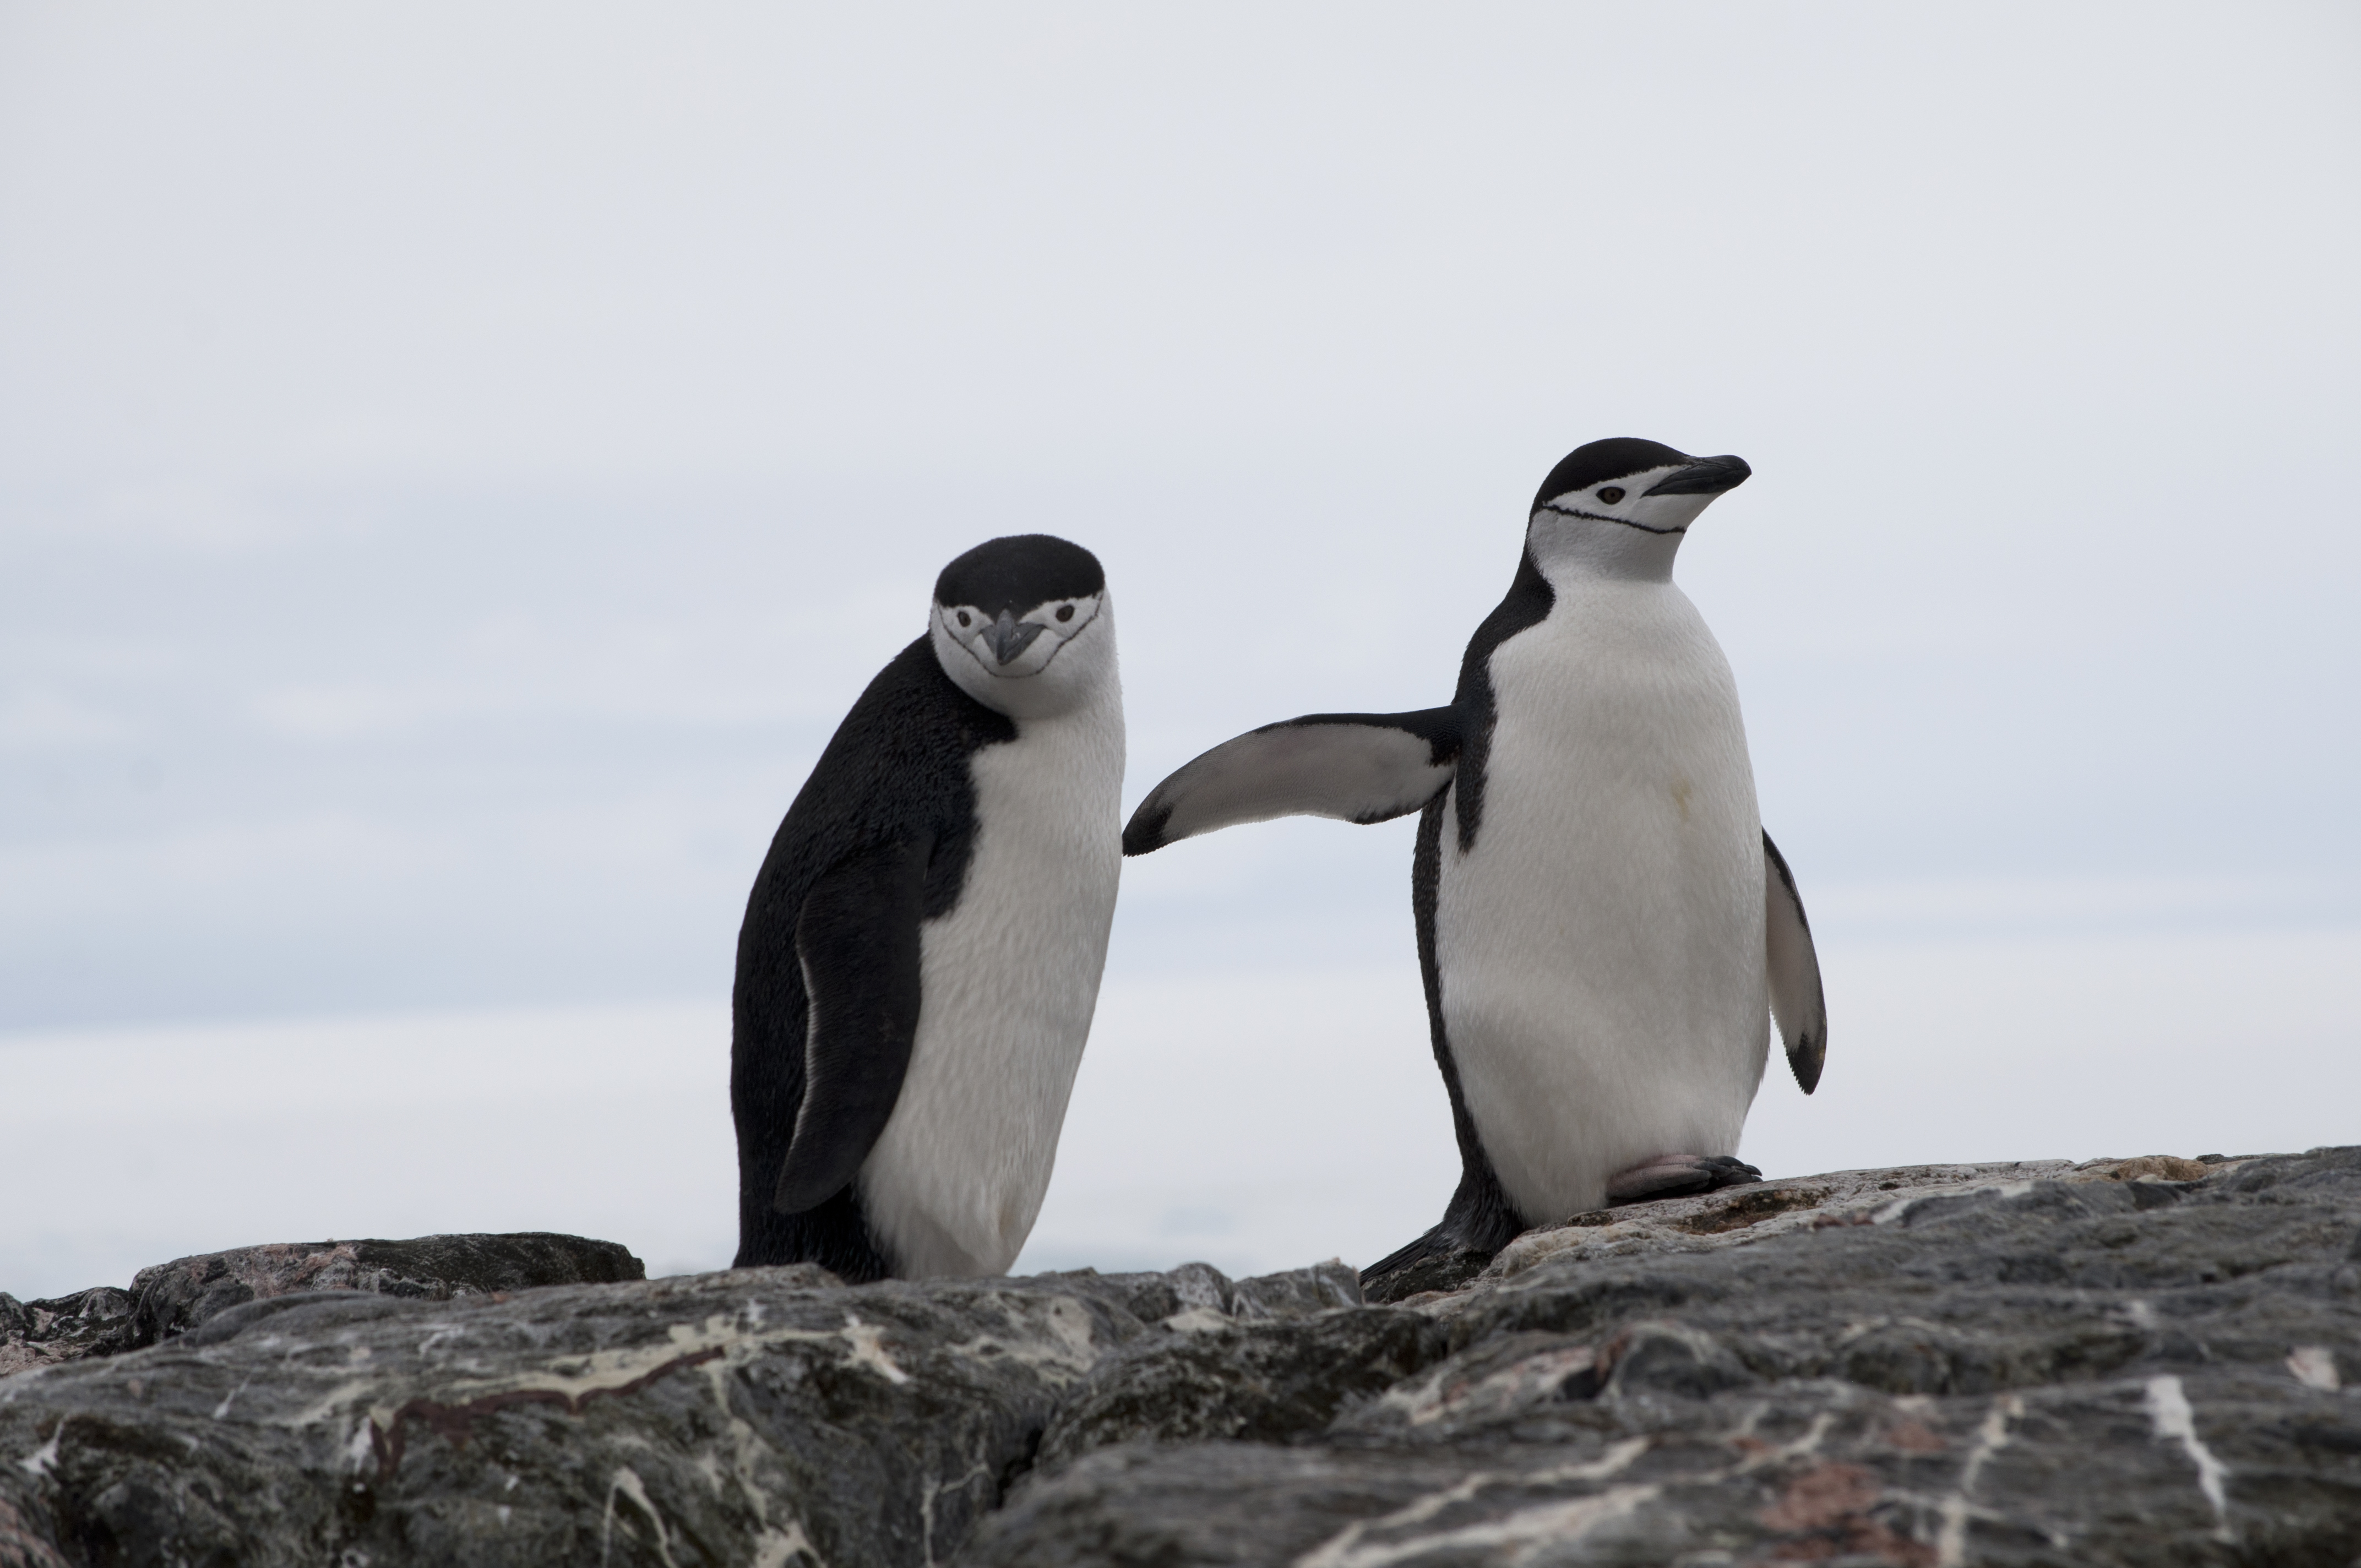 Chinstrap penguins on a rock in Antarctica.